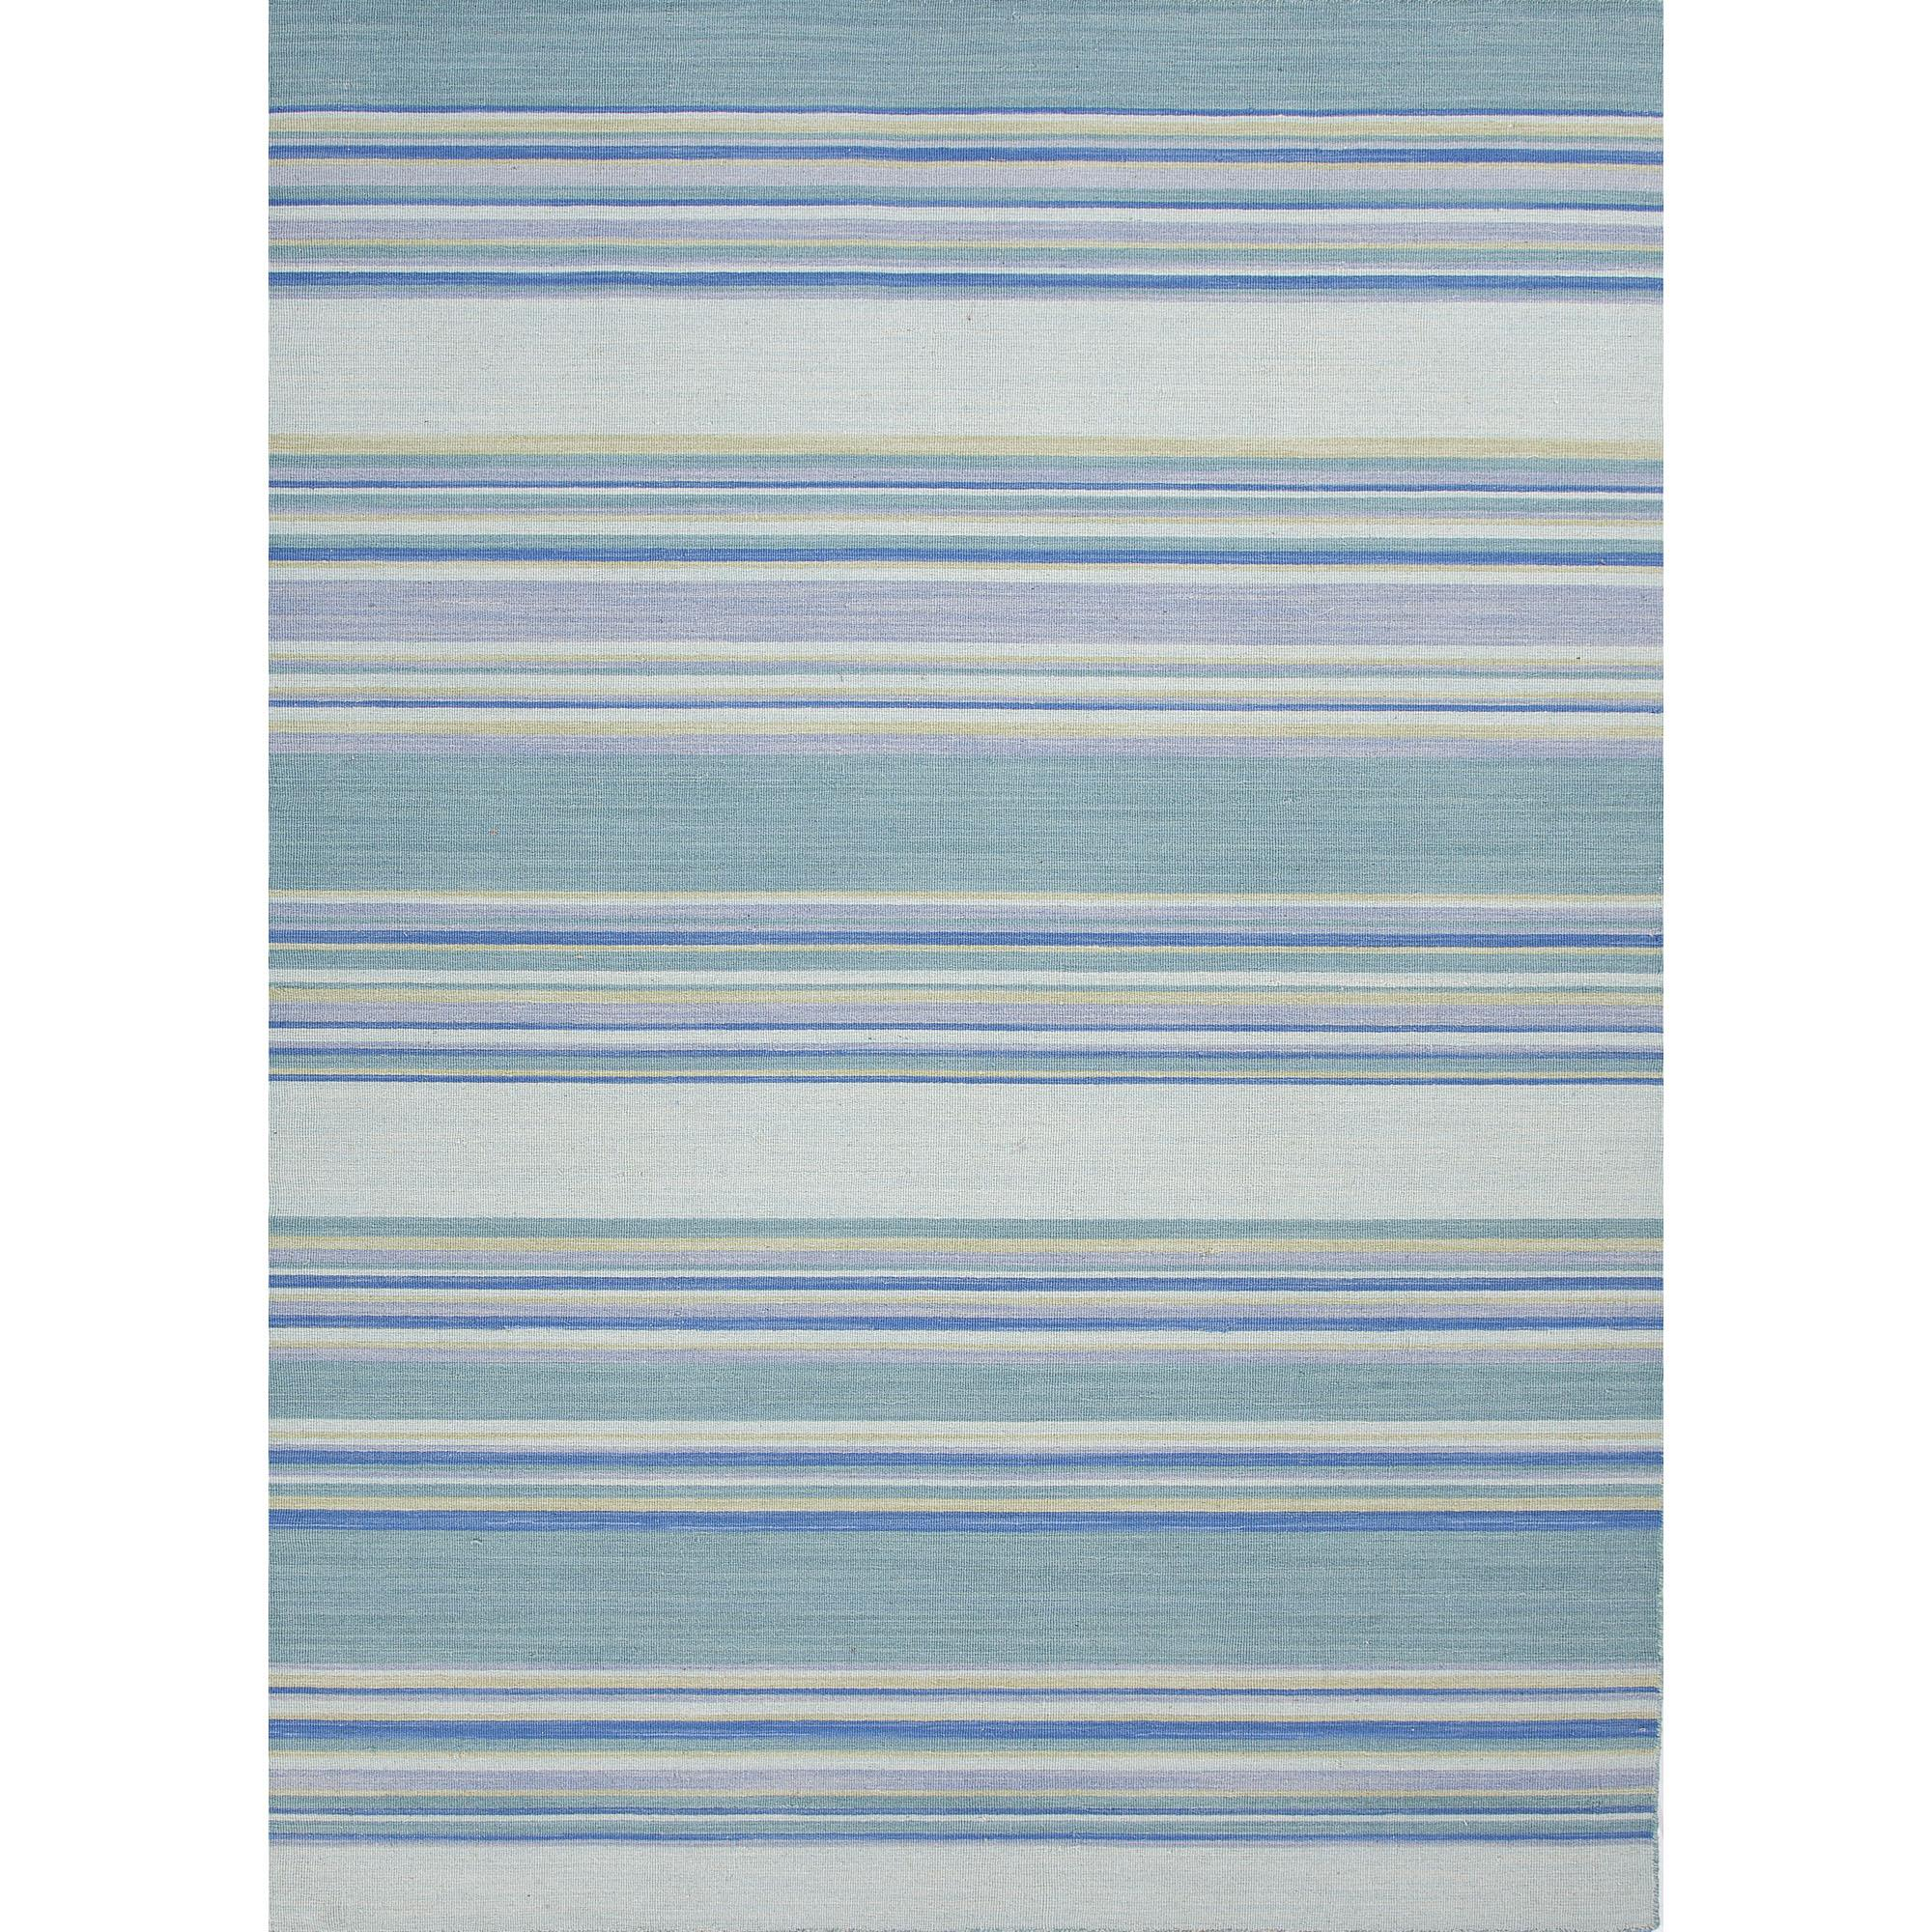 JAIPUR Rugs Coastal Shores 5 x 8 Rug - Item Number: RUG122438